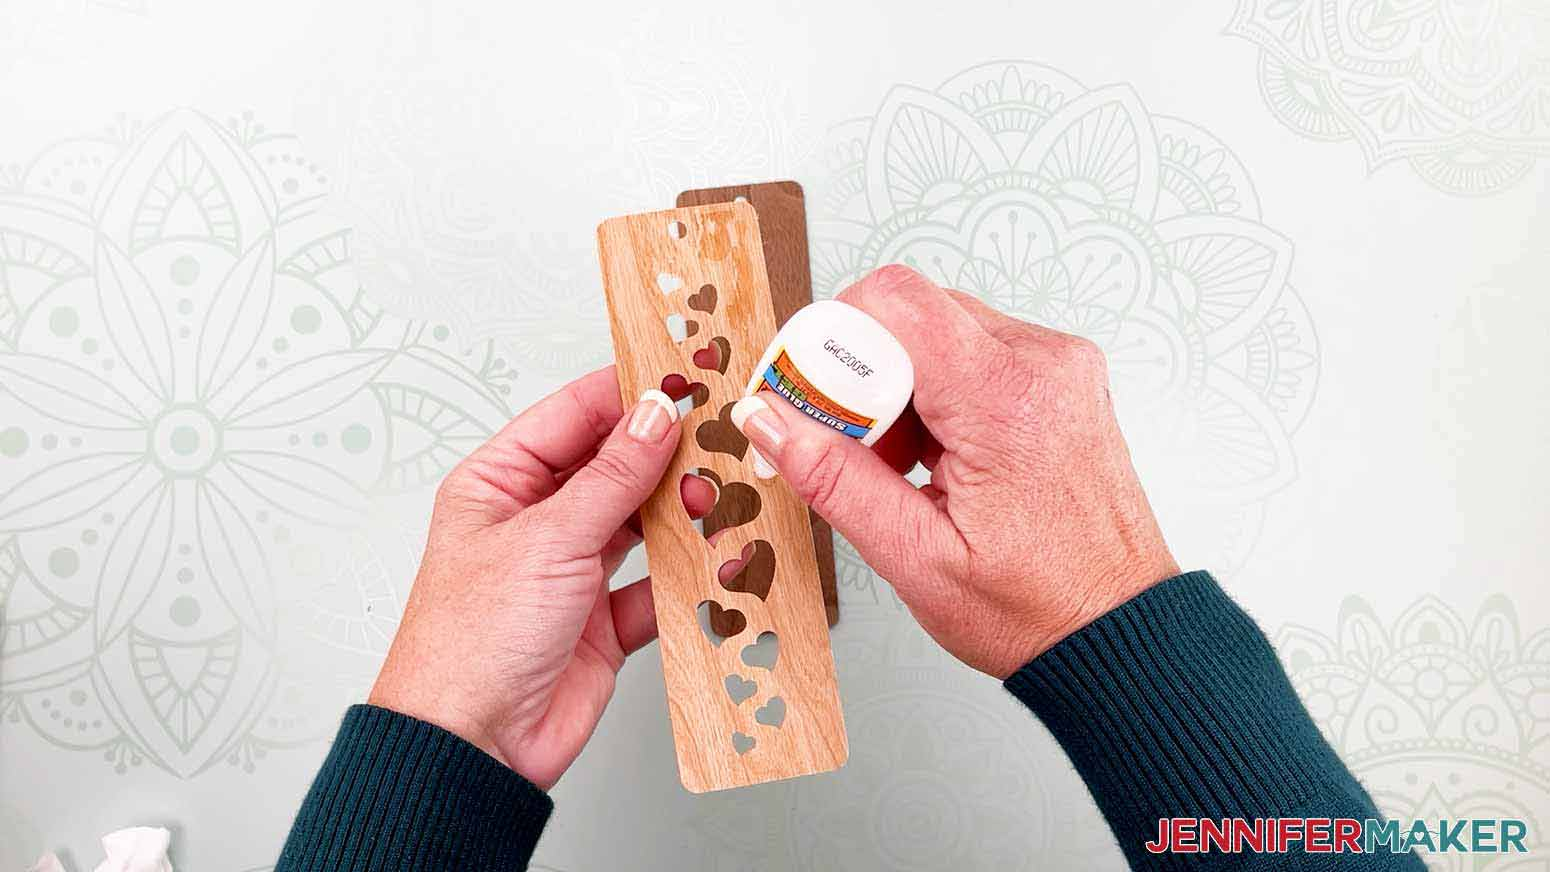 Add glue to the back of the bookmark design for my wooden bookmarks project